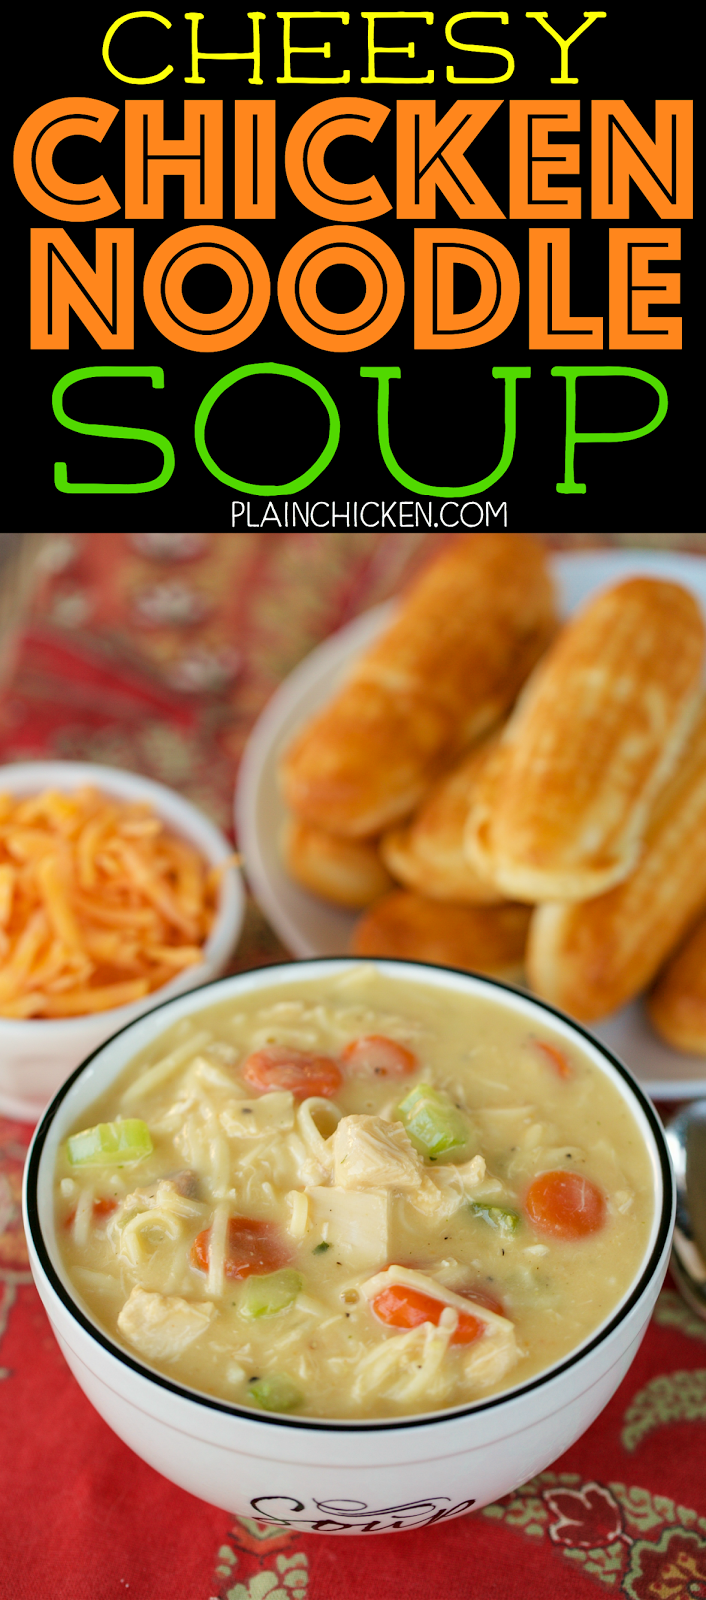 Cheesy Chicken Noodle Soup Ready In Under 30 Minutes Just Dump Everything In The